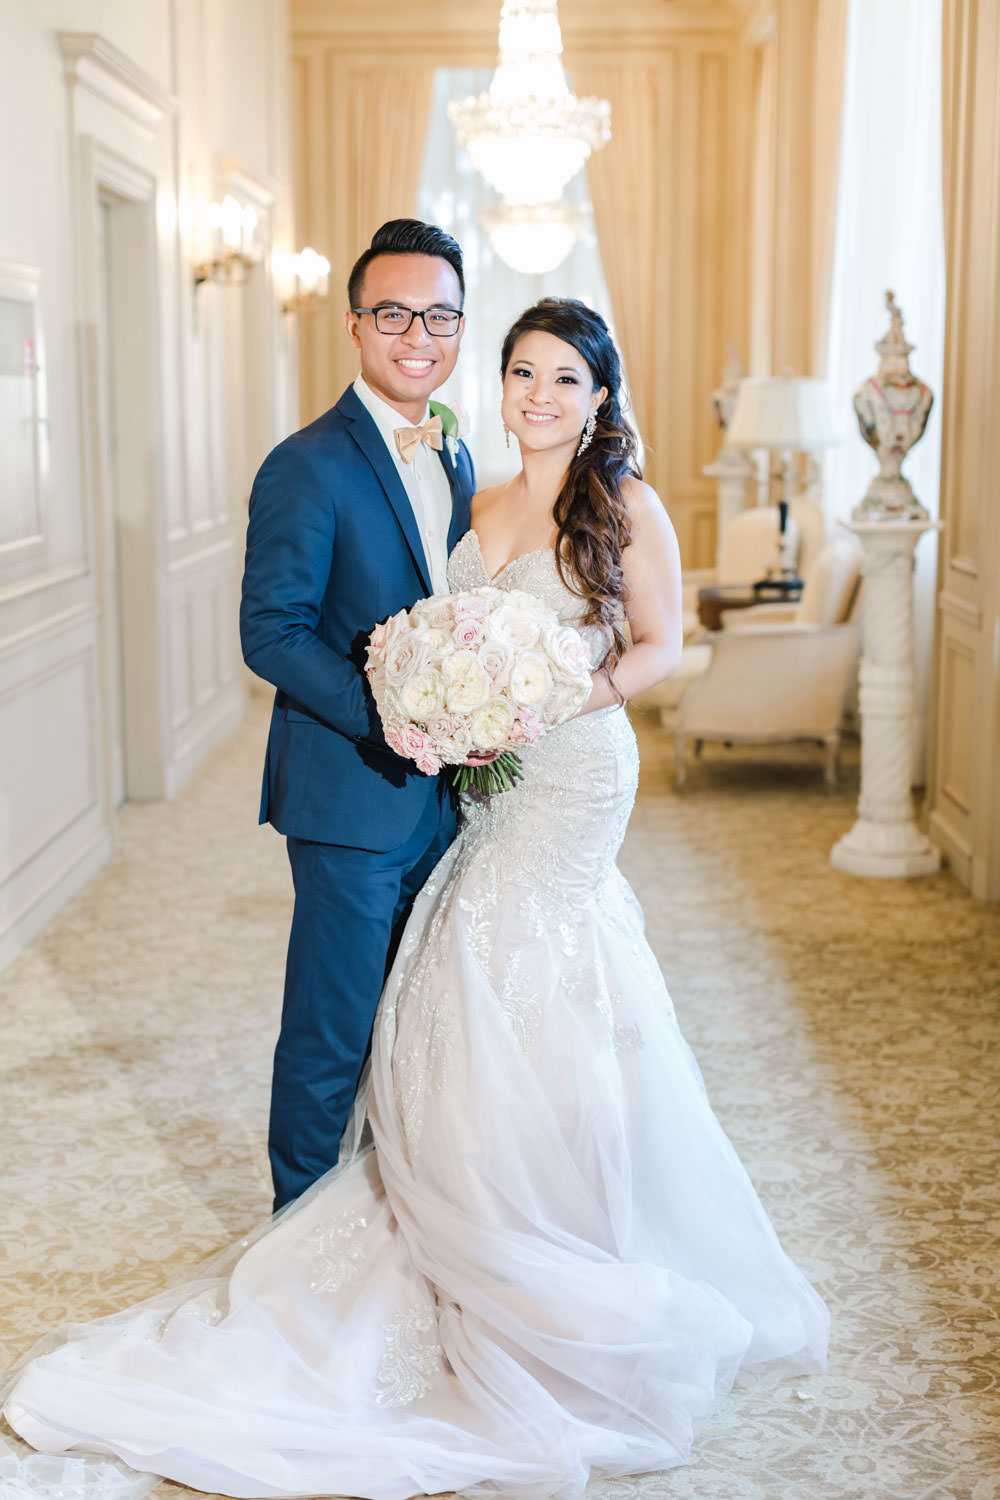 Bride and groom portrait in the hallway at Elegant Westgate Hotel Wedding in Downtown San Diego, Cavin Elizabeth Photography